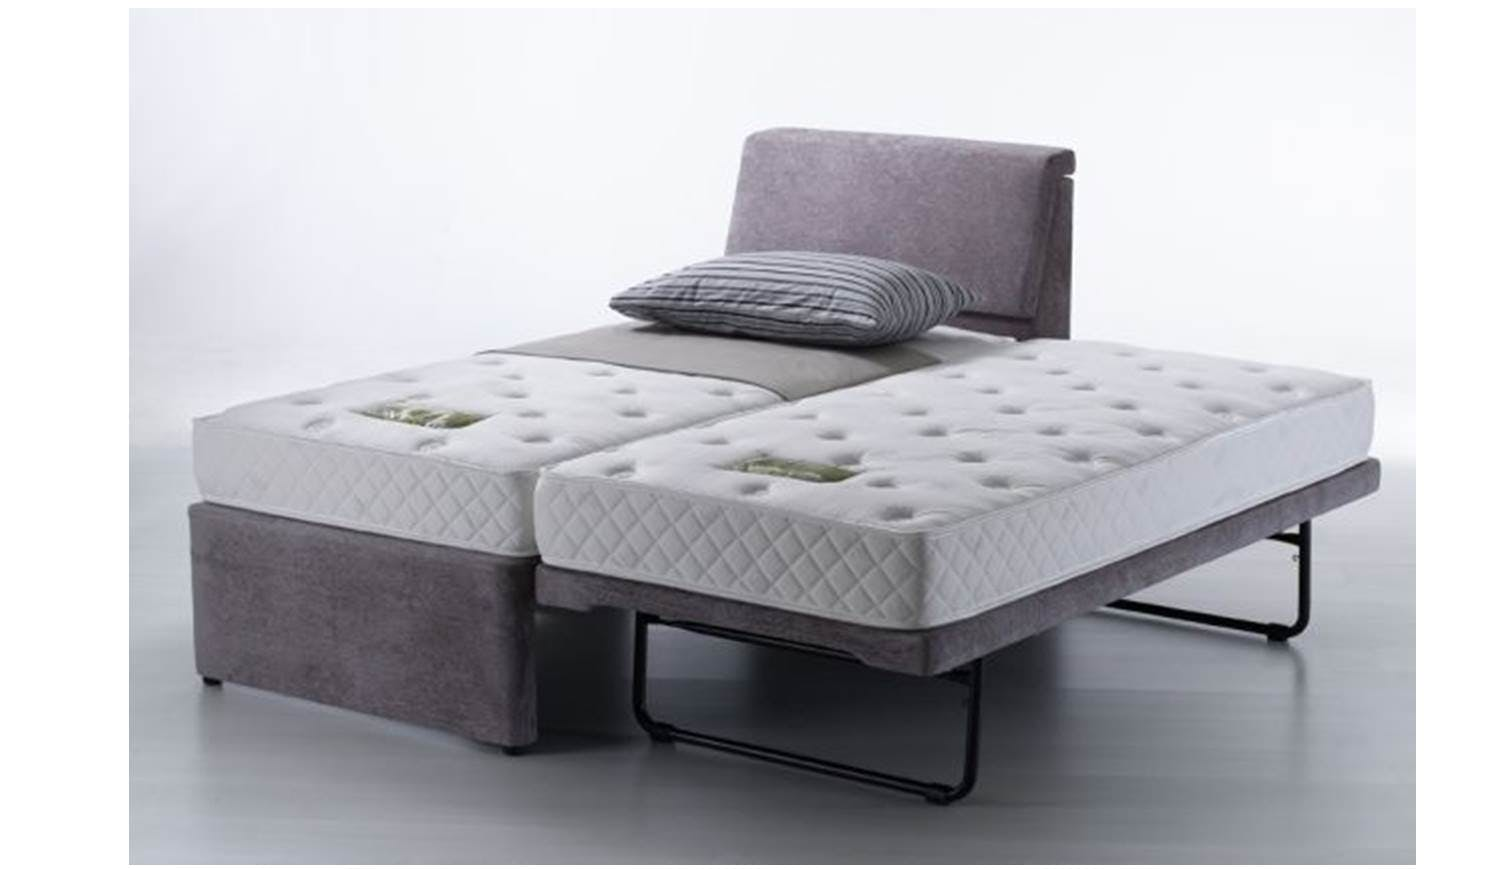 Unice Single Bed Frame With Single Pullout Bed Gd028 22